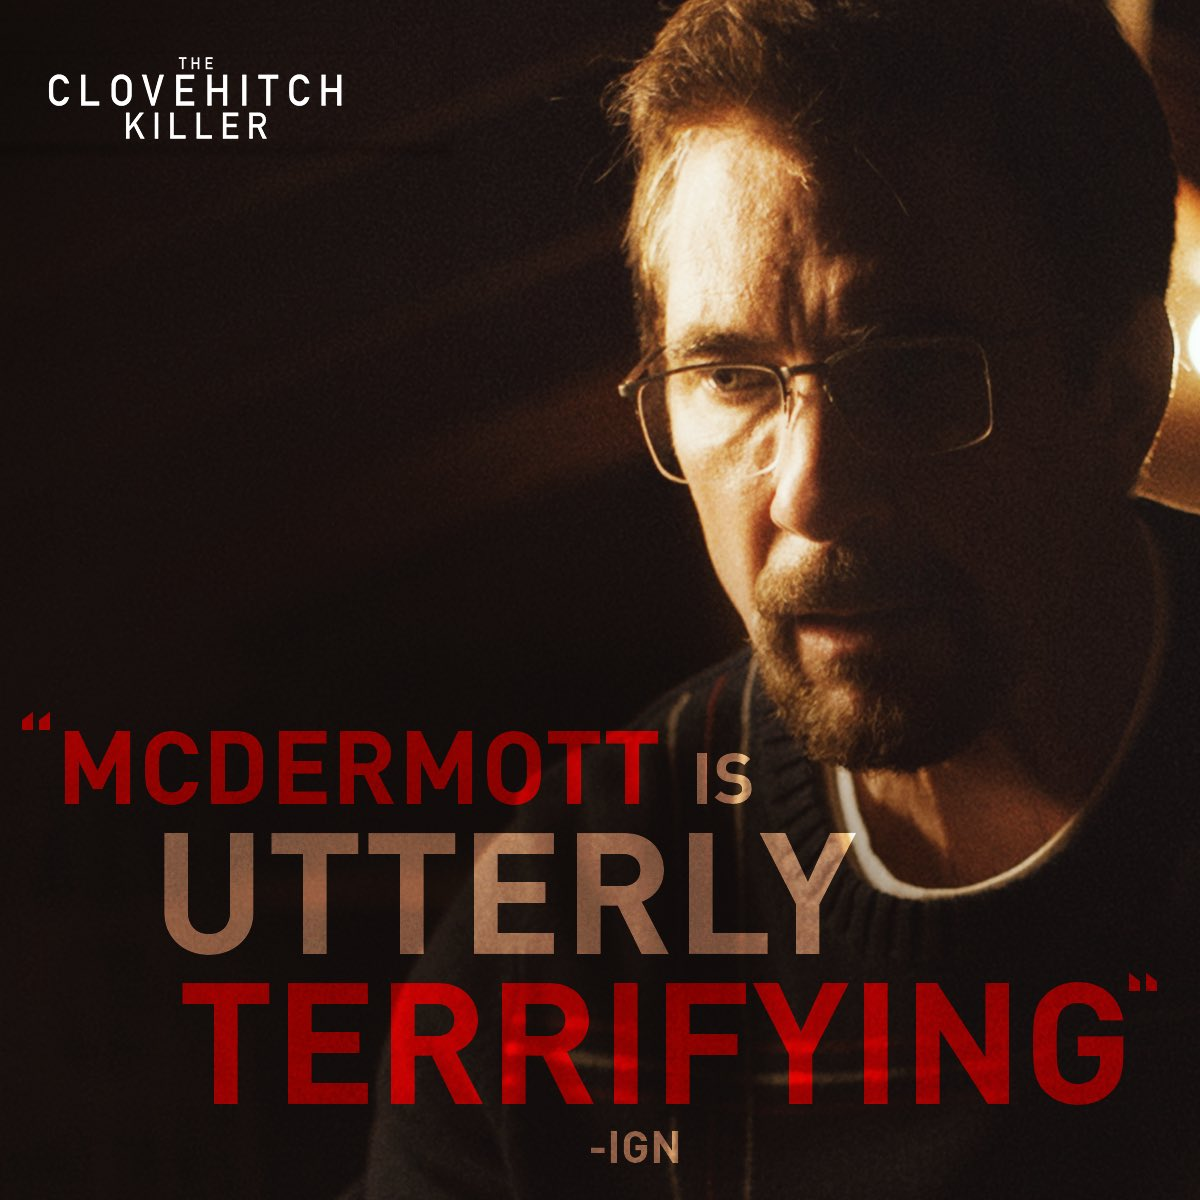 The stellar performance from @DylanMcDermott as #TheClovehitchKiller can't be missed! See it today On Demand.